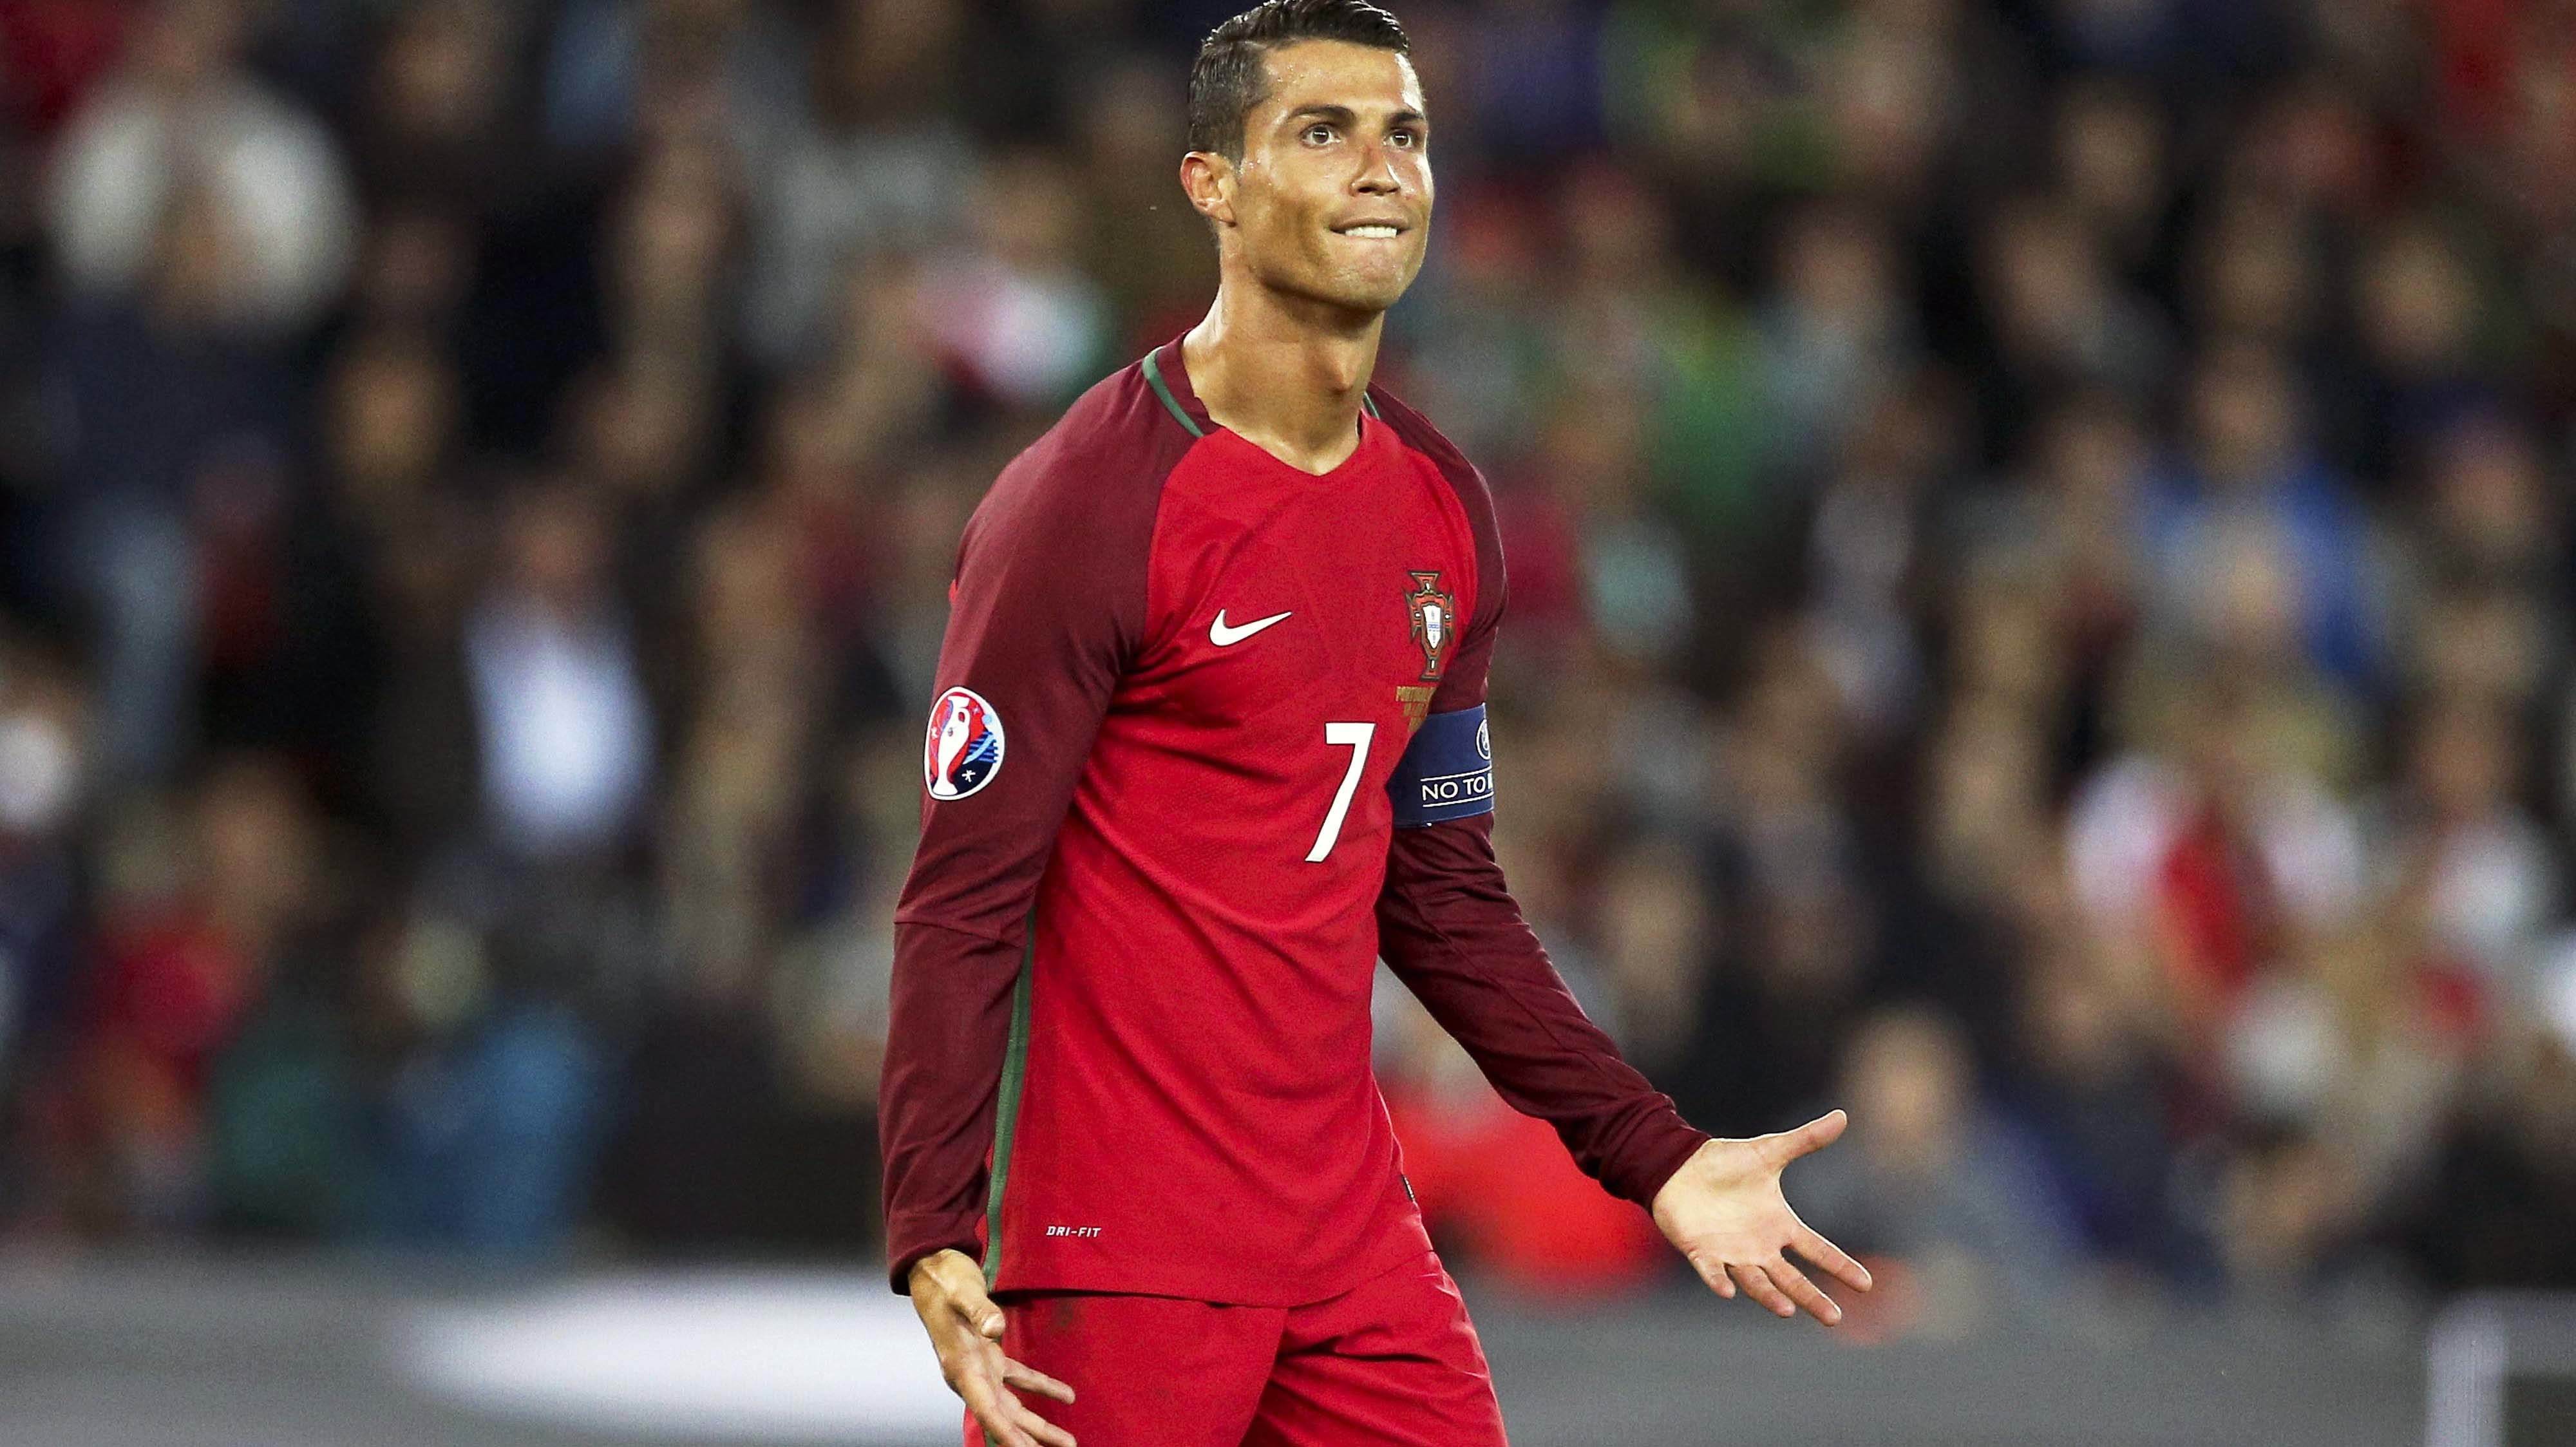 . Paris (France), 18/06/2015.- Portugal's Cristiano Ronaldo reacts during the UEFA EURO 2016 group F preliminary round match between Portugal and Austria at Parc des Princes Stadium in Paris, France, 18 June 2016. The match ended 0-0. (RESTRICTIONS A